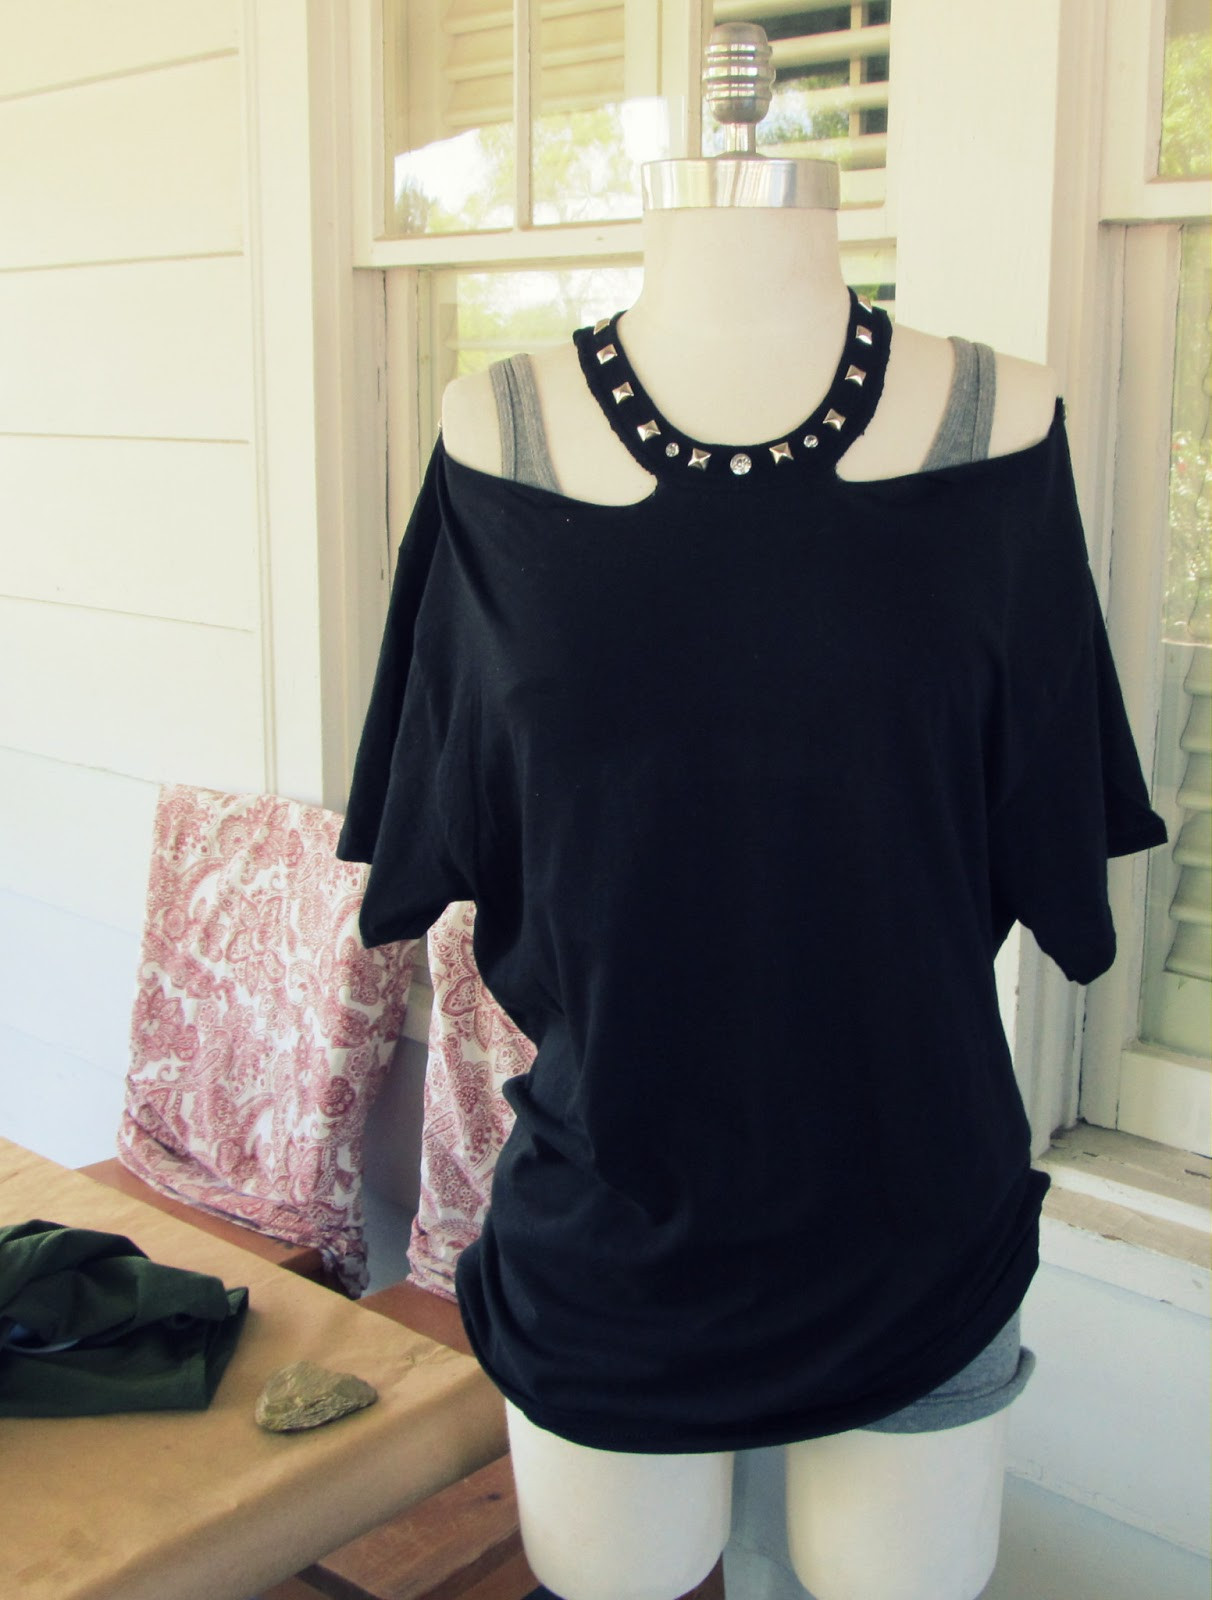 Best ideas about DIY T Shirt . Save or Pin WobiSobi No Sew Jewelled Halter T Shirt DIY Now.